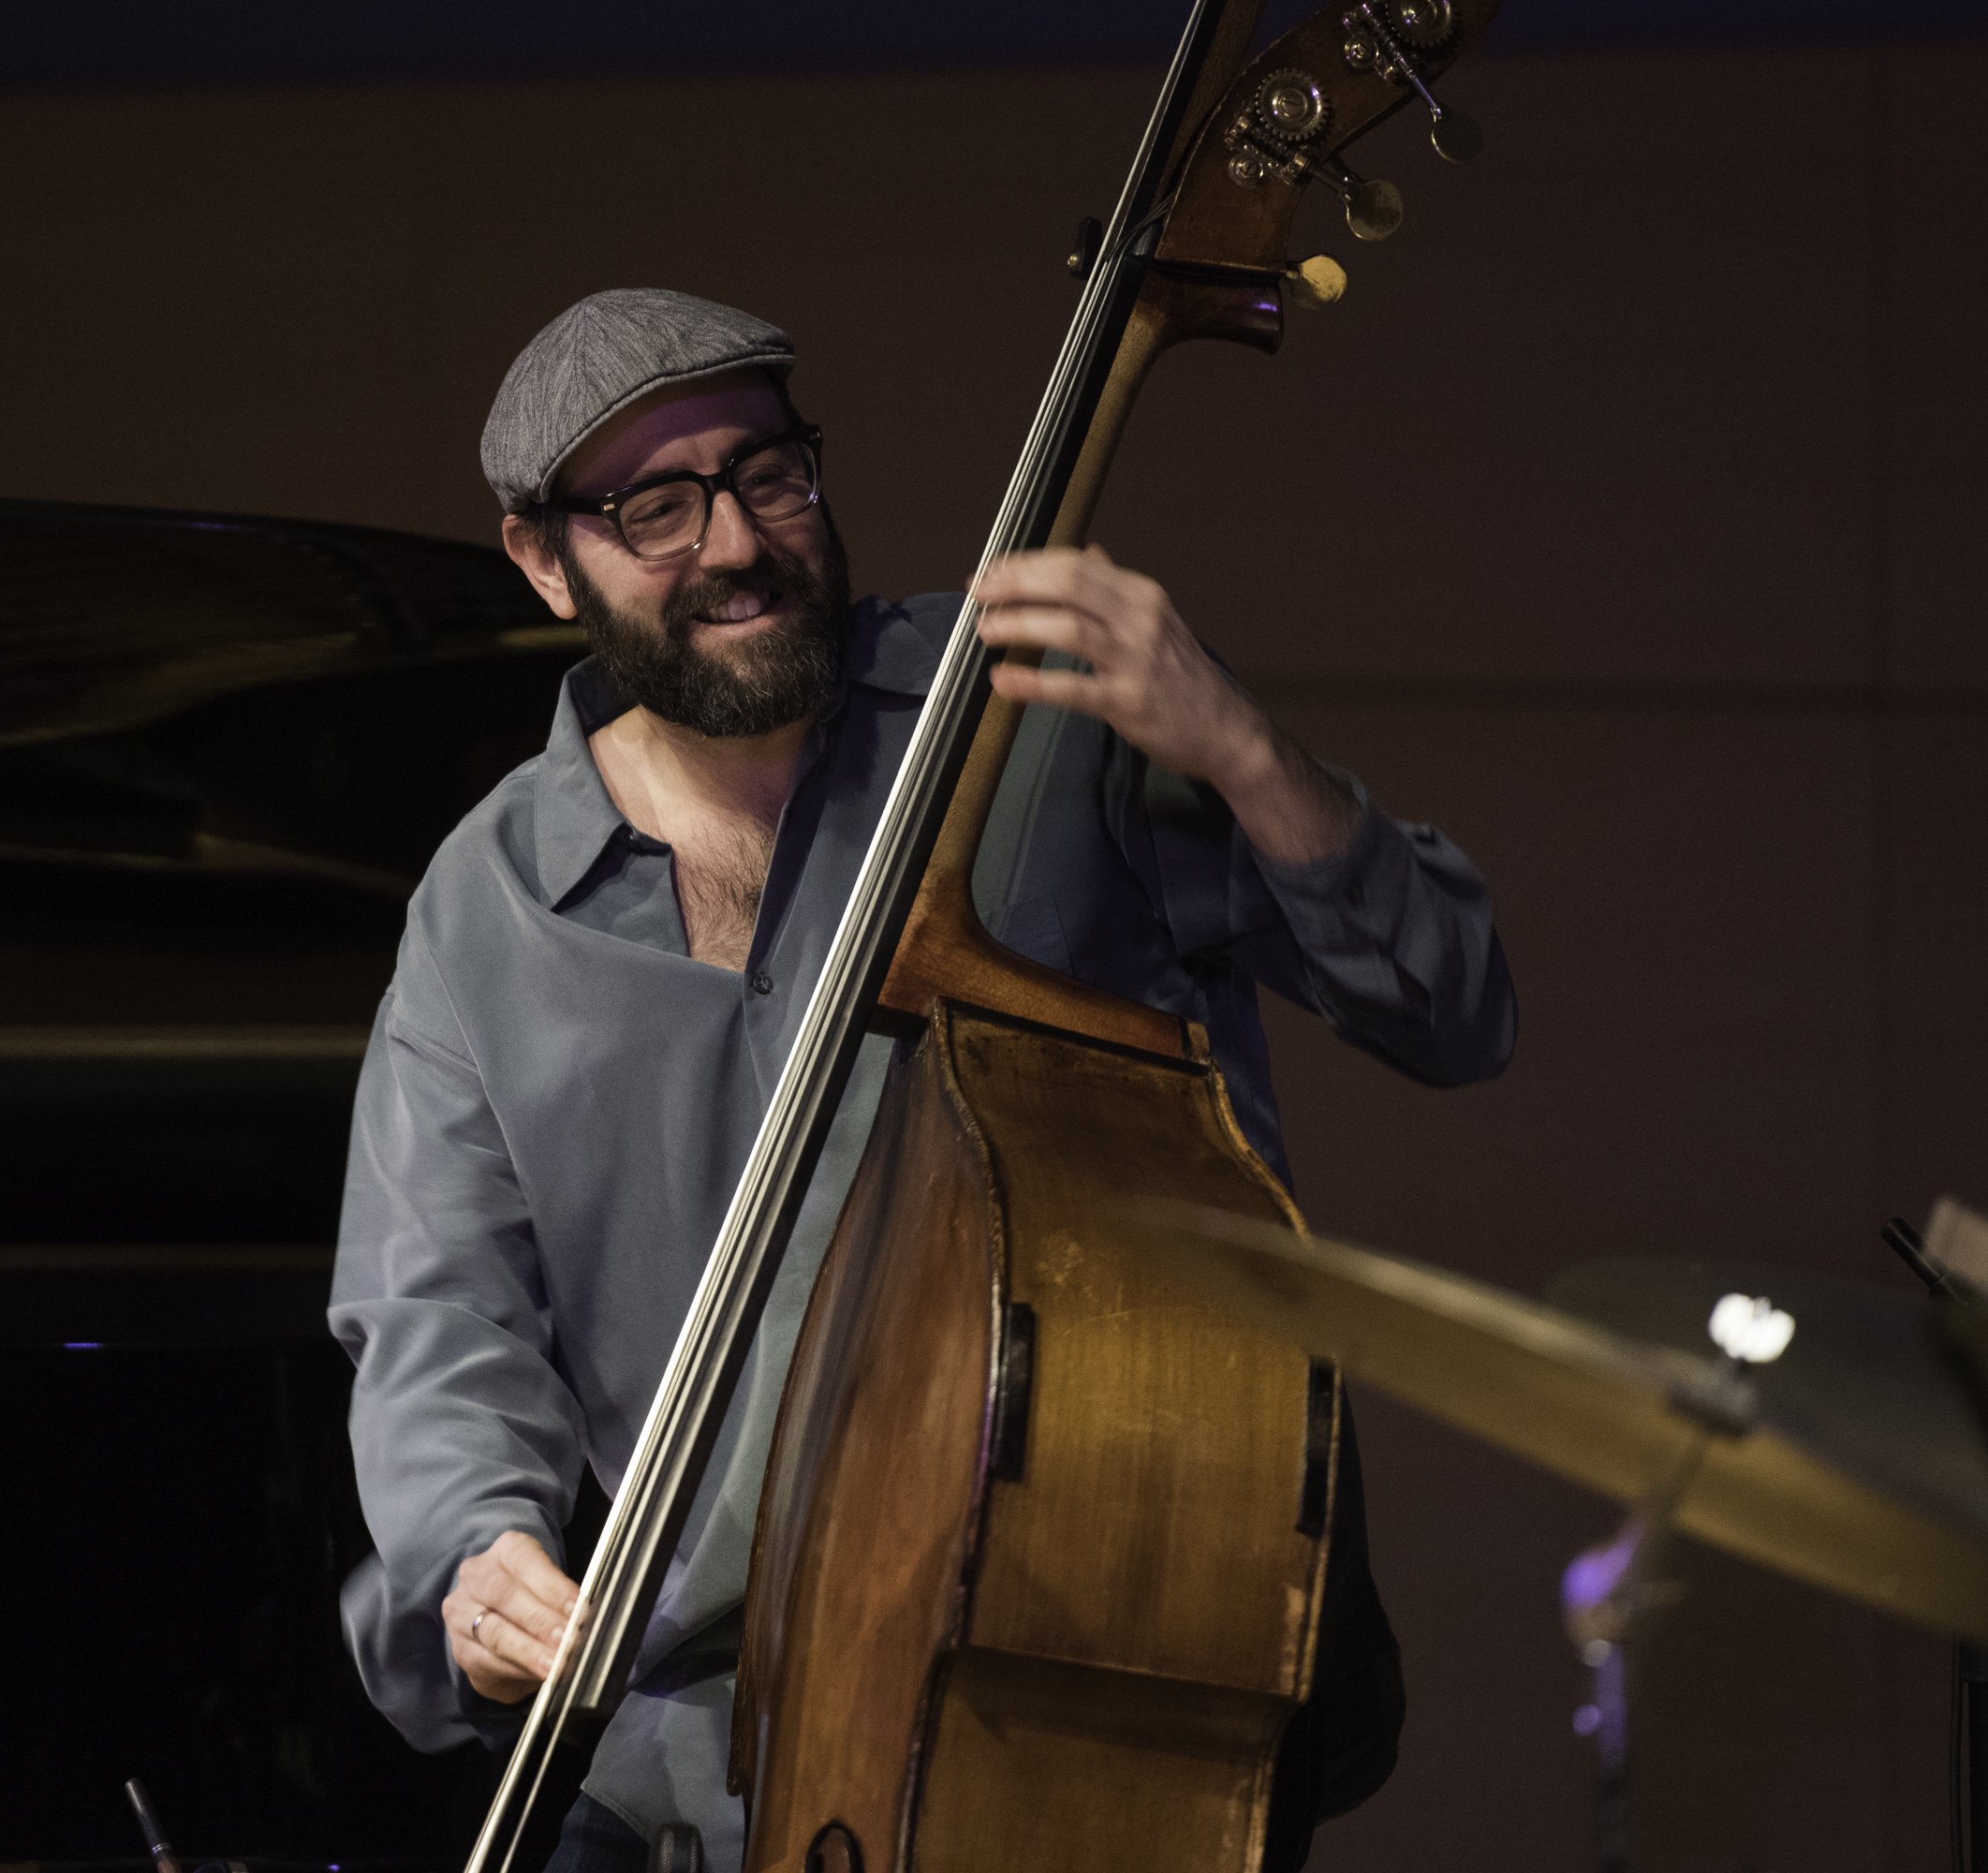 John Hebert with Tim Berne's Sideshow at the NYC Winter Jazzfest 2016